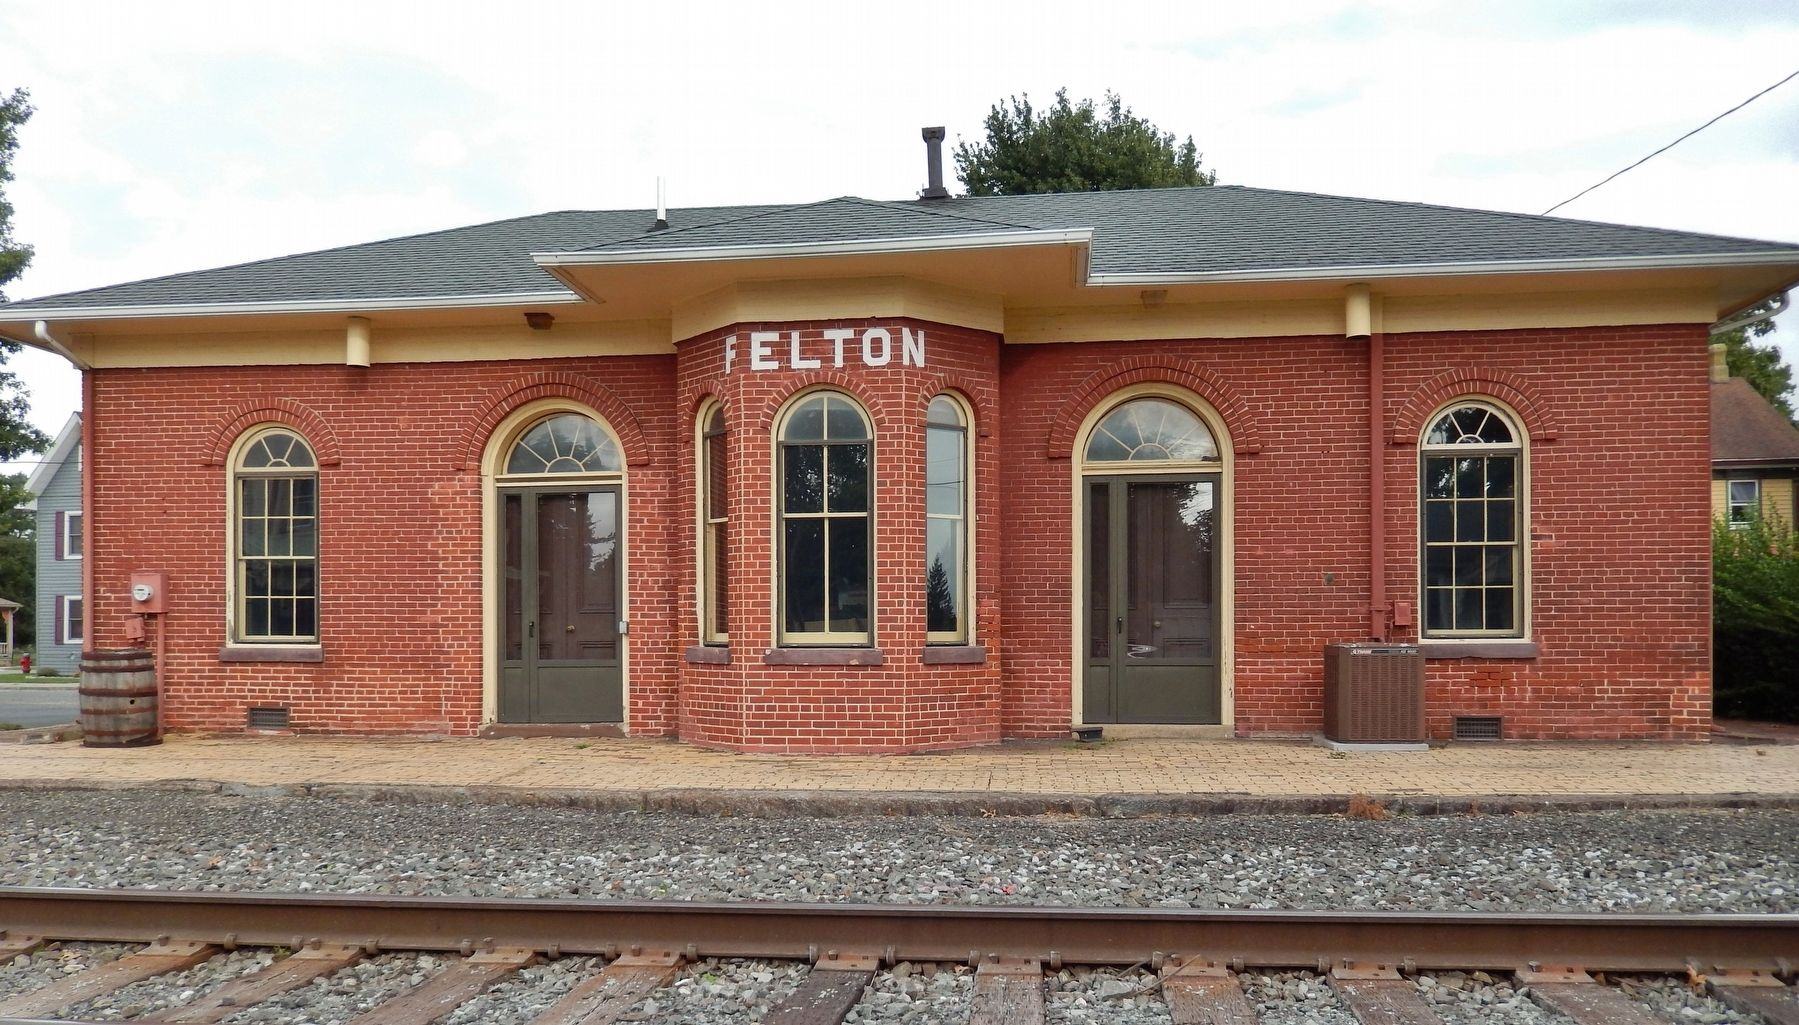 Felton Railroad Station<br>(<i>west side view from railroad tracks</i>) image. Click for full size.